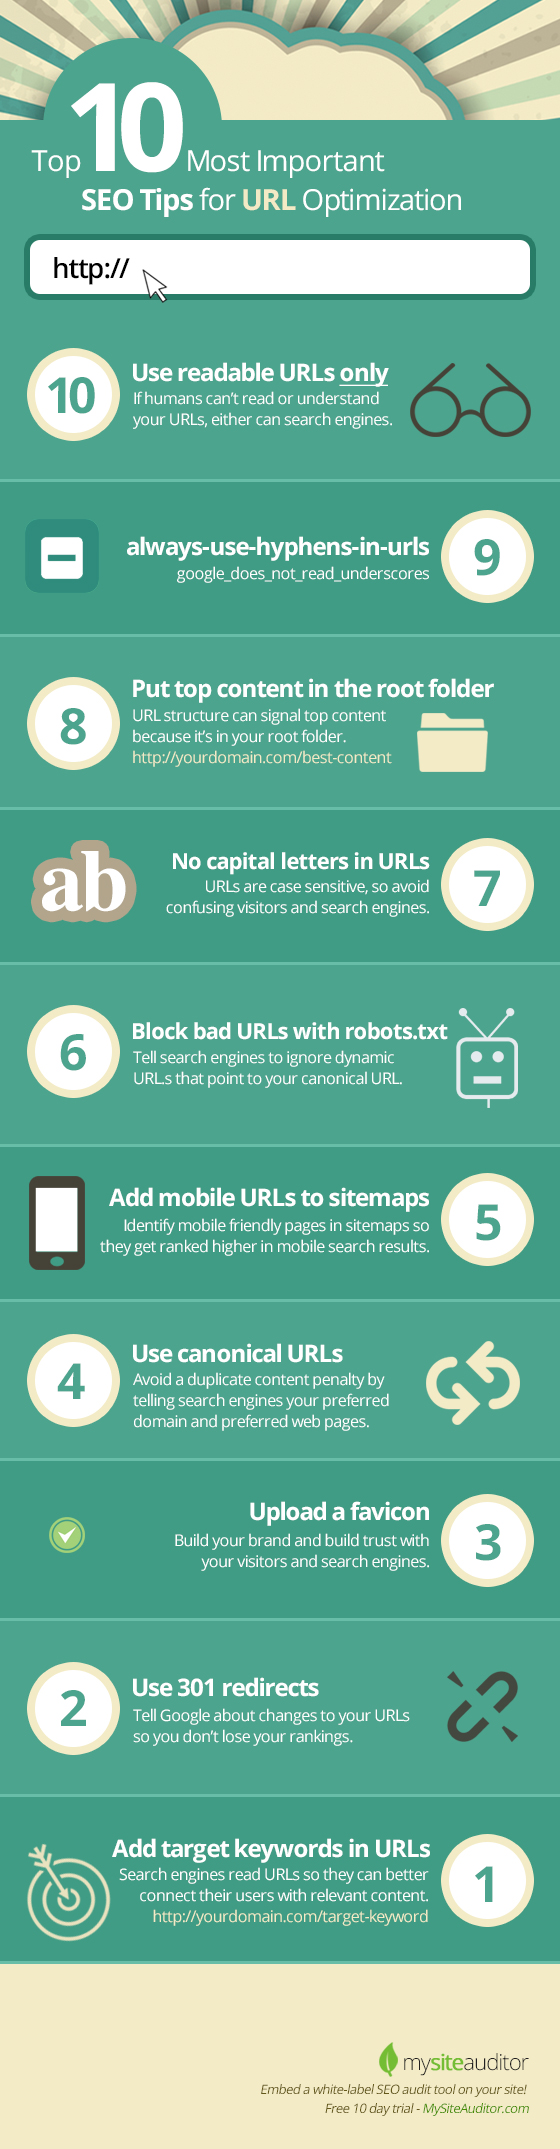 Ways to Optimize Your URL